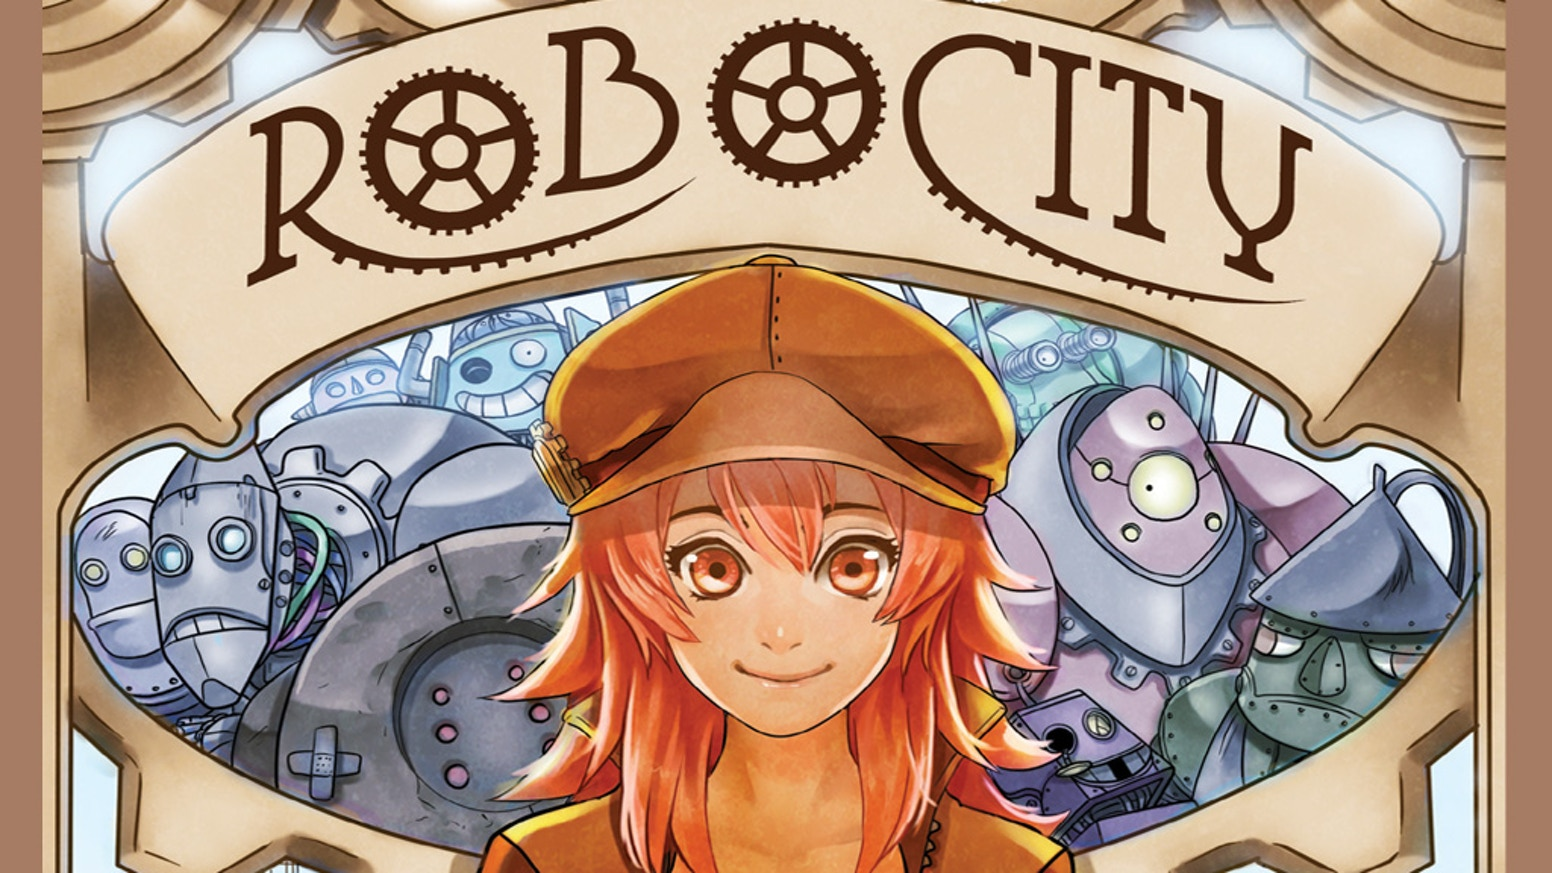 This is the kickstarter for the English edition of my steampunk adventure comic: Heartlandstories: Robocity